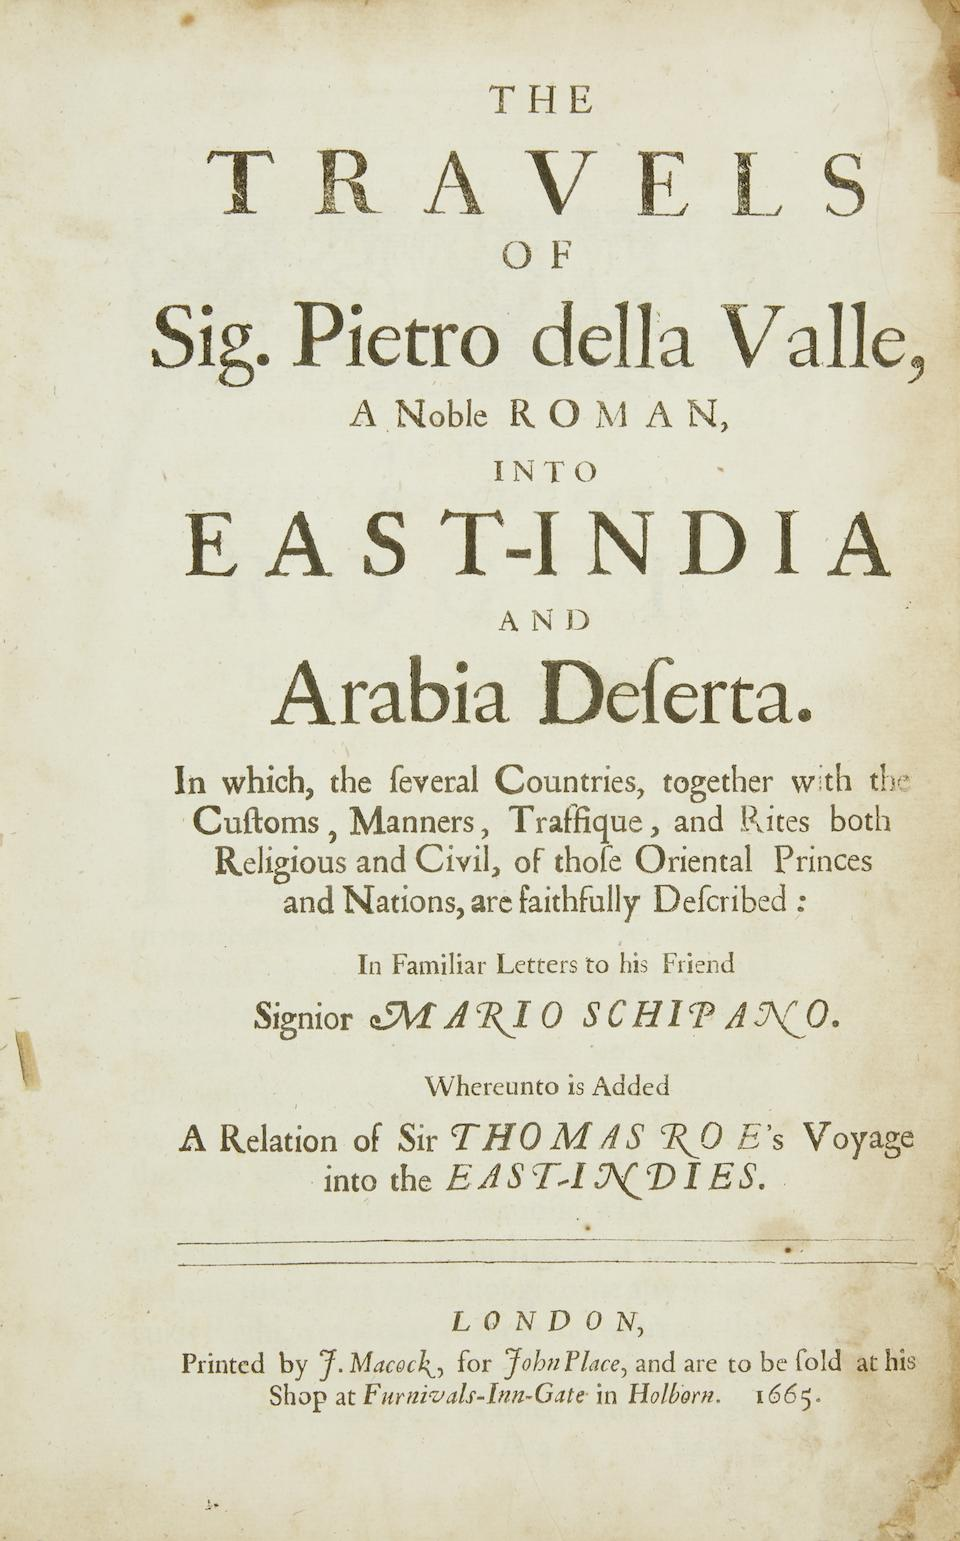 HERBERT, THOMAS. 1606-1682. Some Yeares Travels into Africa, Asia, the great, especially Describing the Famous Empires of Persia and Industan.  London: [Printed by R. Everingham, for R. Scot, T. Basset, J. Wright, and R. Chiswell], 1677.